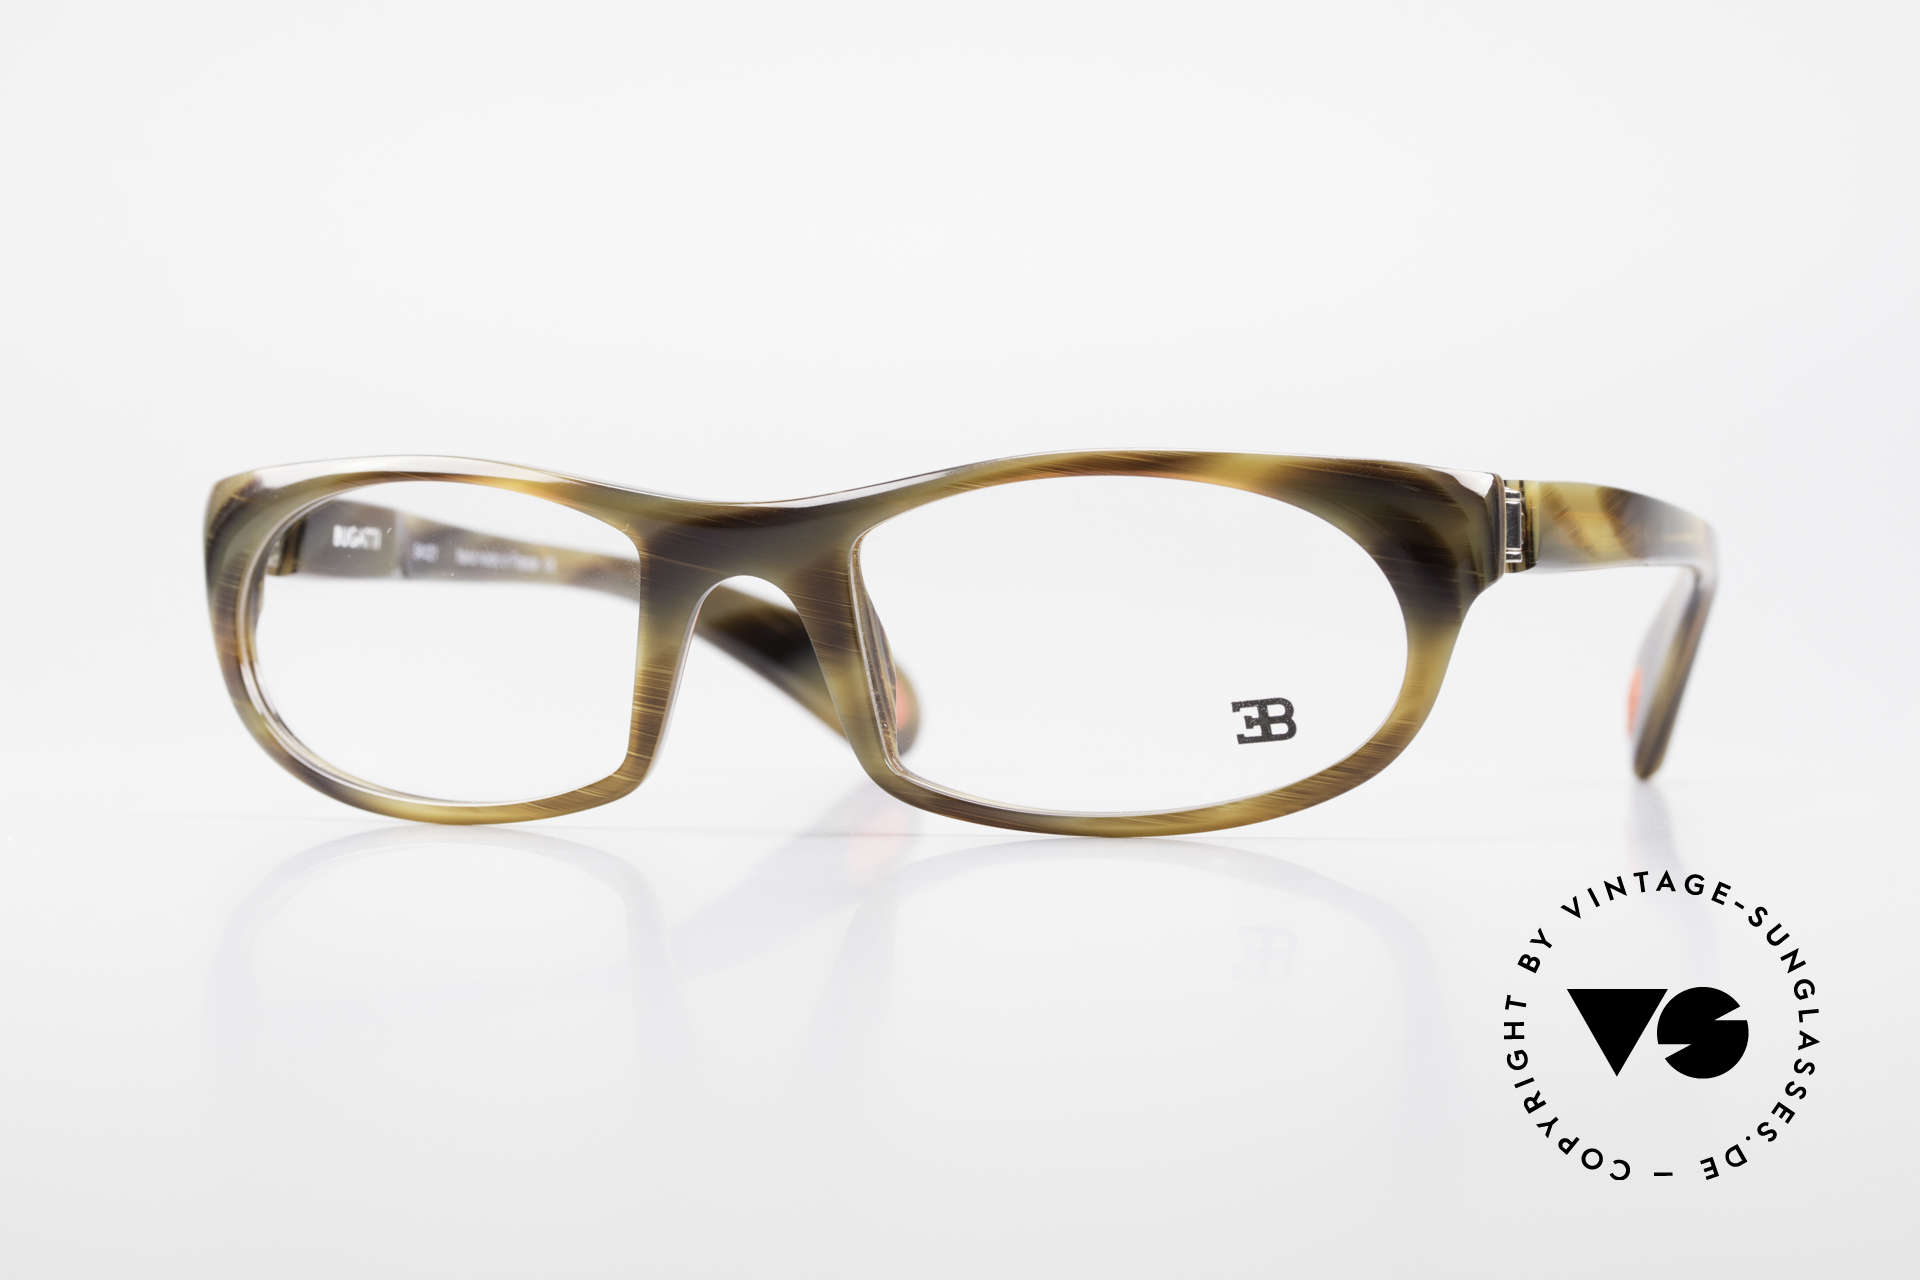 Bugatti 326 Odotype True Vintage Eyeglass-Frame, sporty BUGATTI high-tech eyeglass-frame, Made for Men